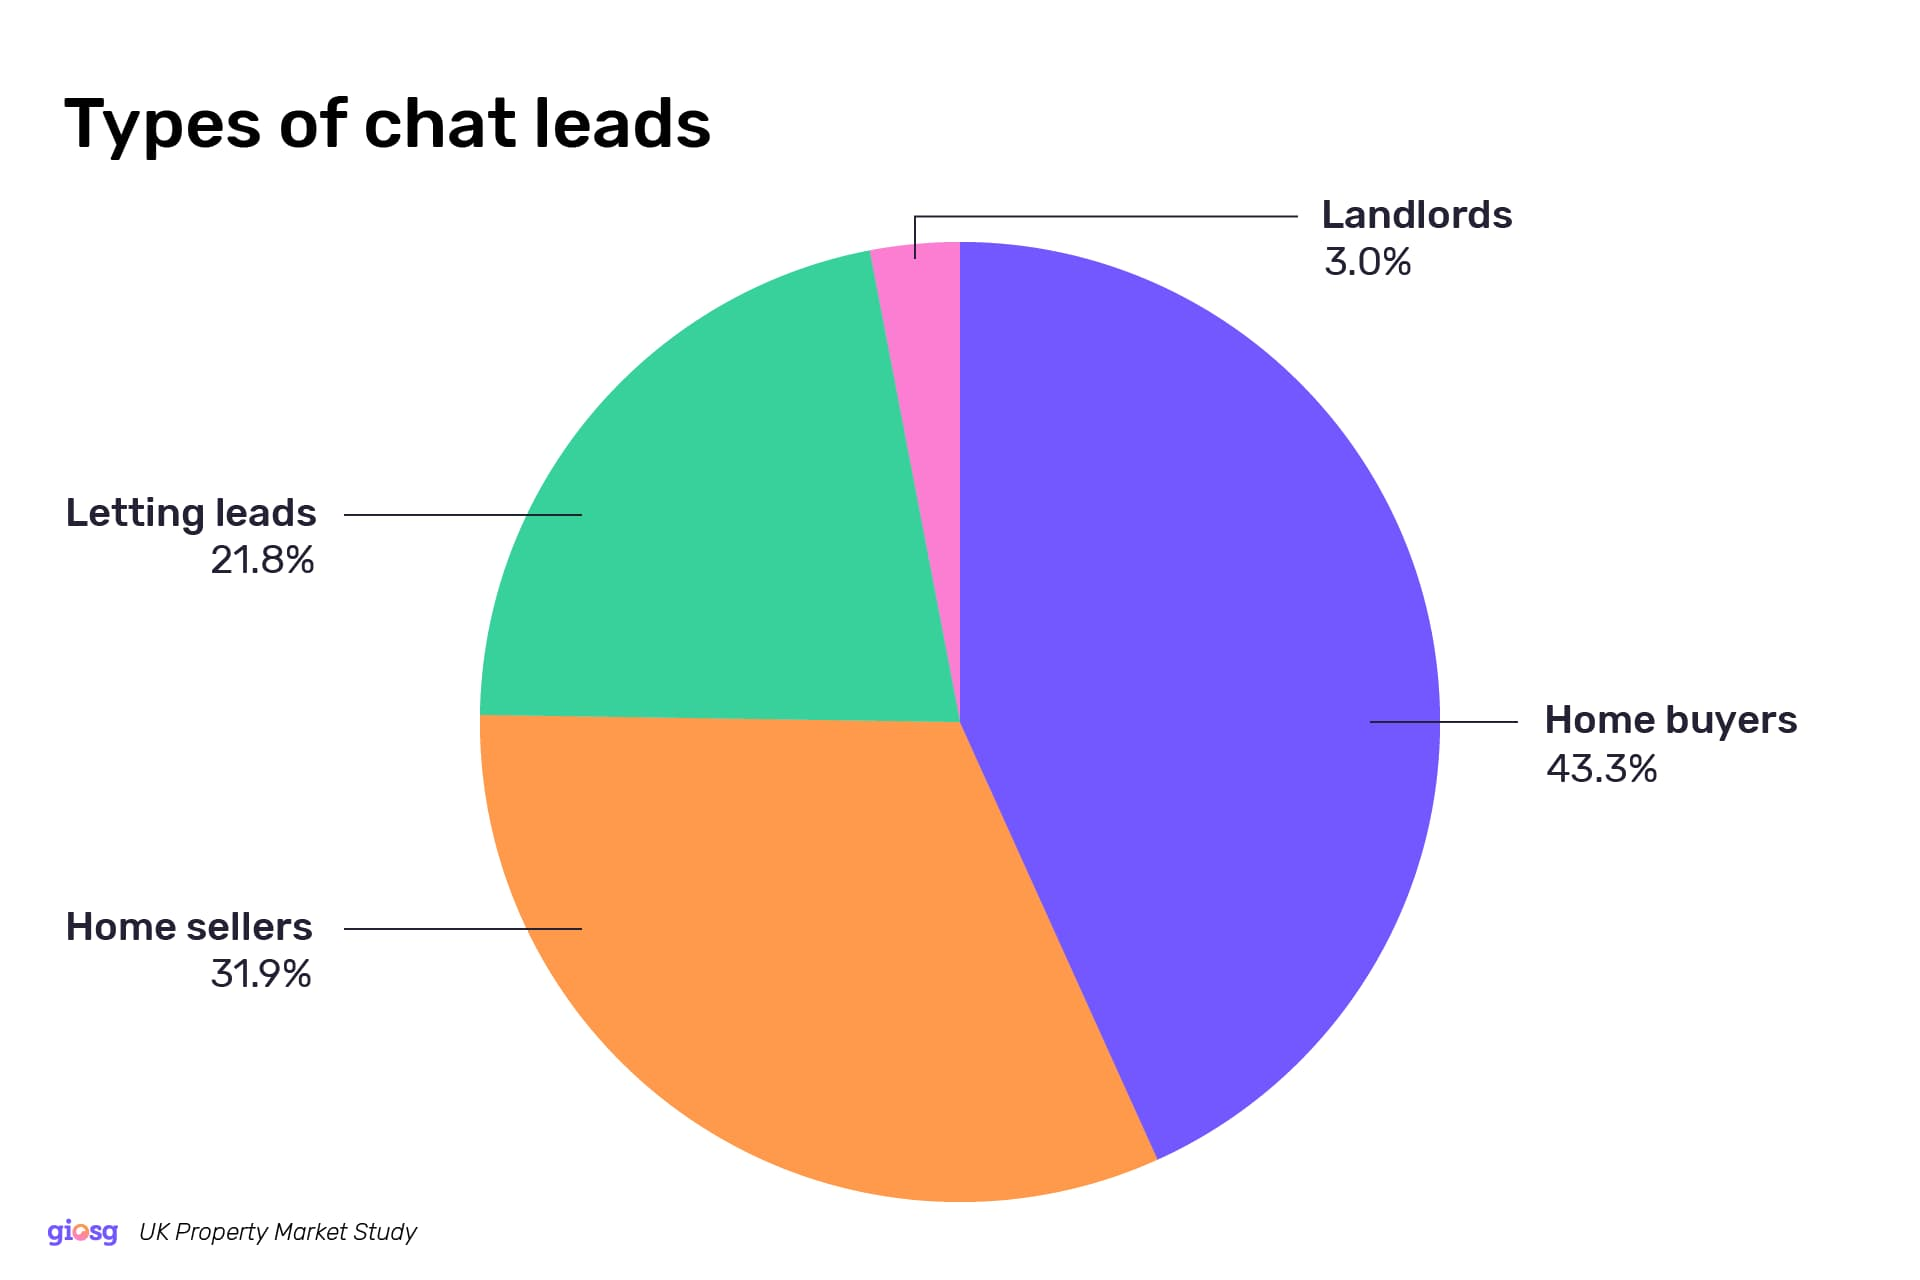 Types of chat leads on estate agent websites showing homebuyers at 43.3%